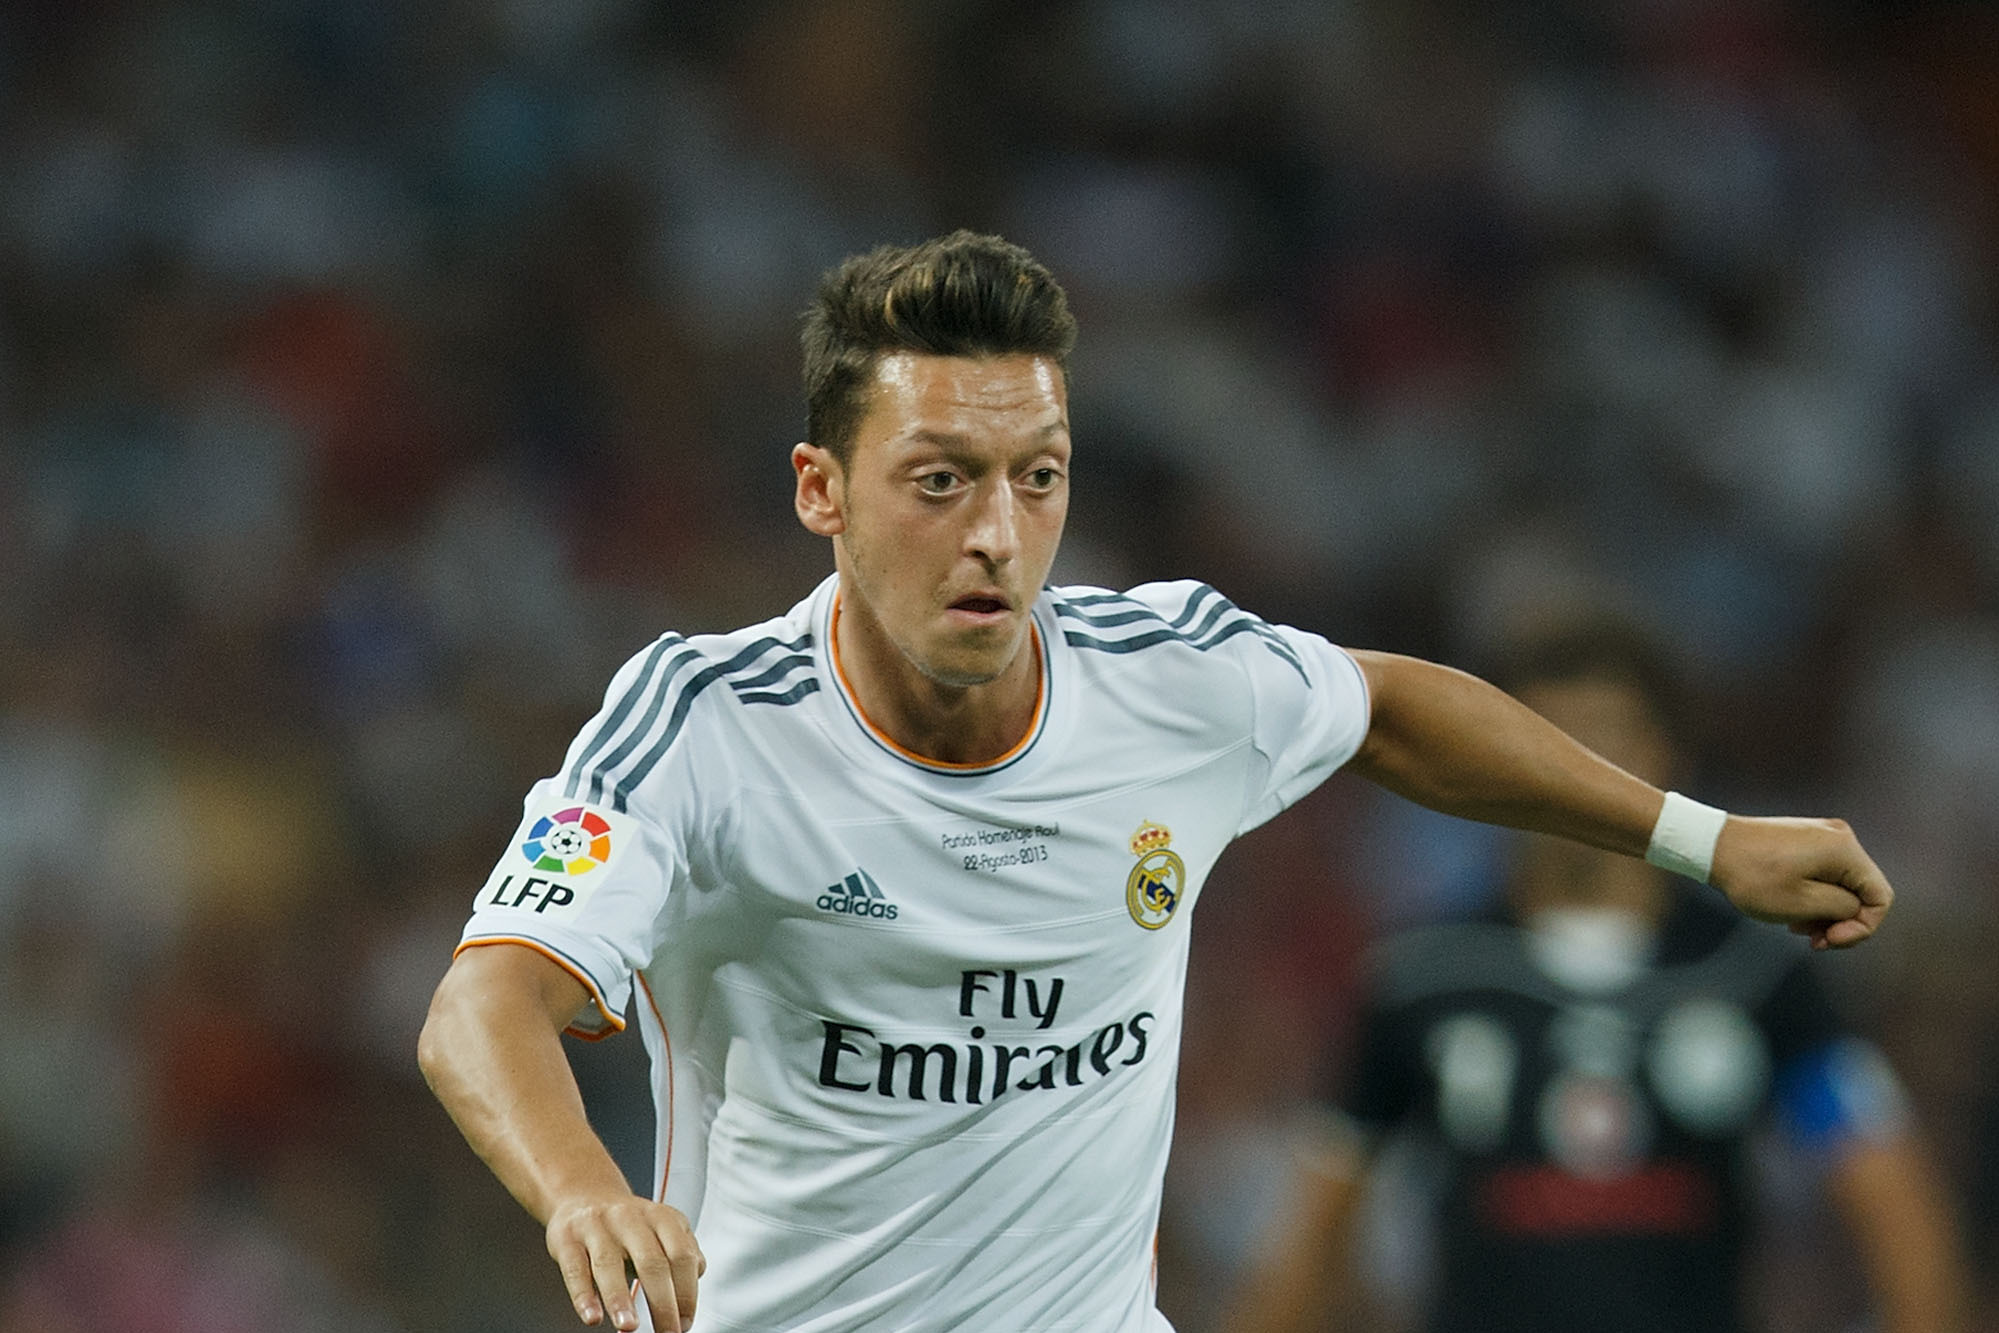 Are Real Madrid Missing The Presence Of Arsenal Midfielder Mesut Ozil Bleacher Report Latest News Videos And Highlights